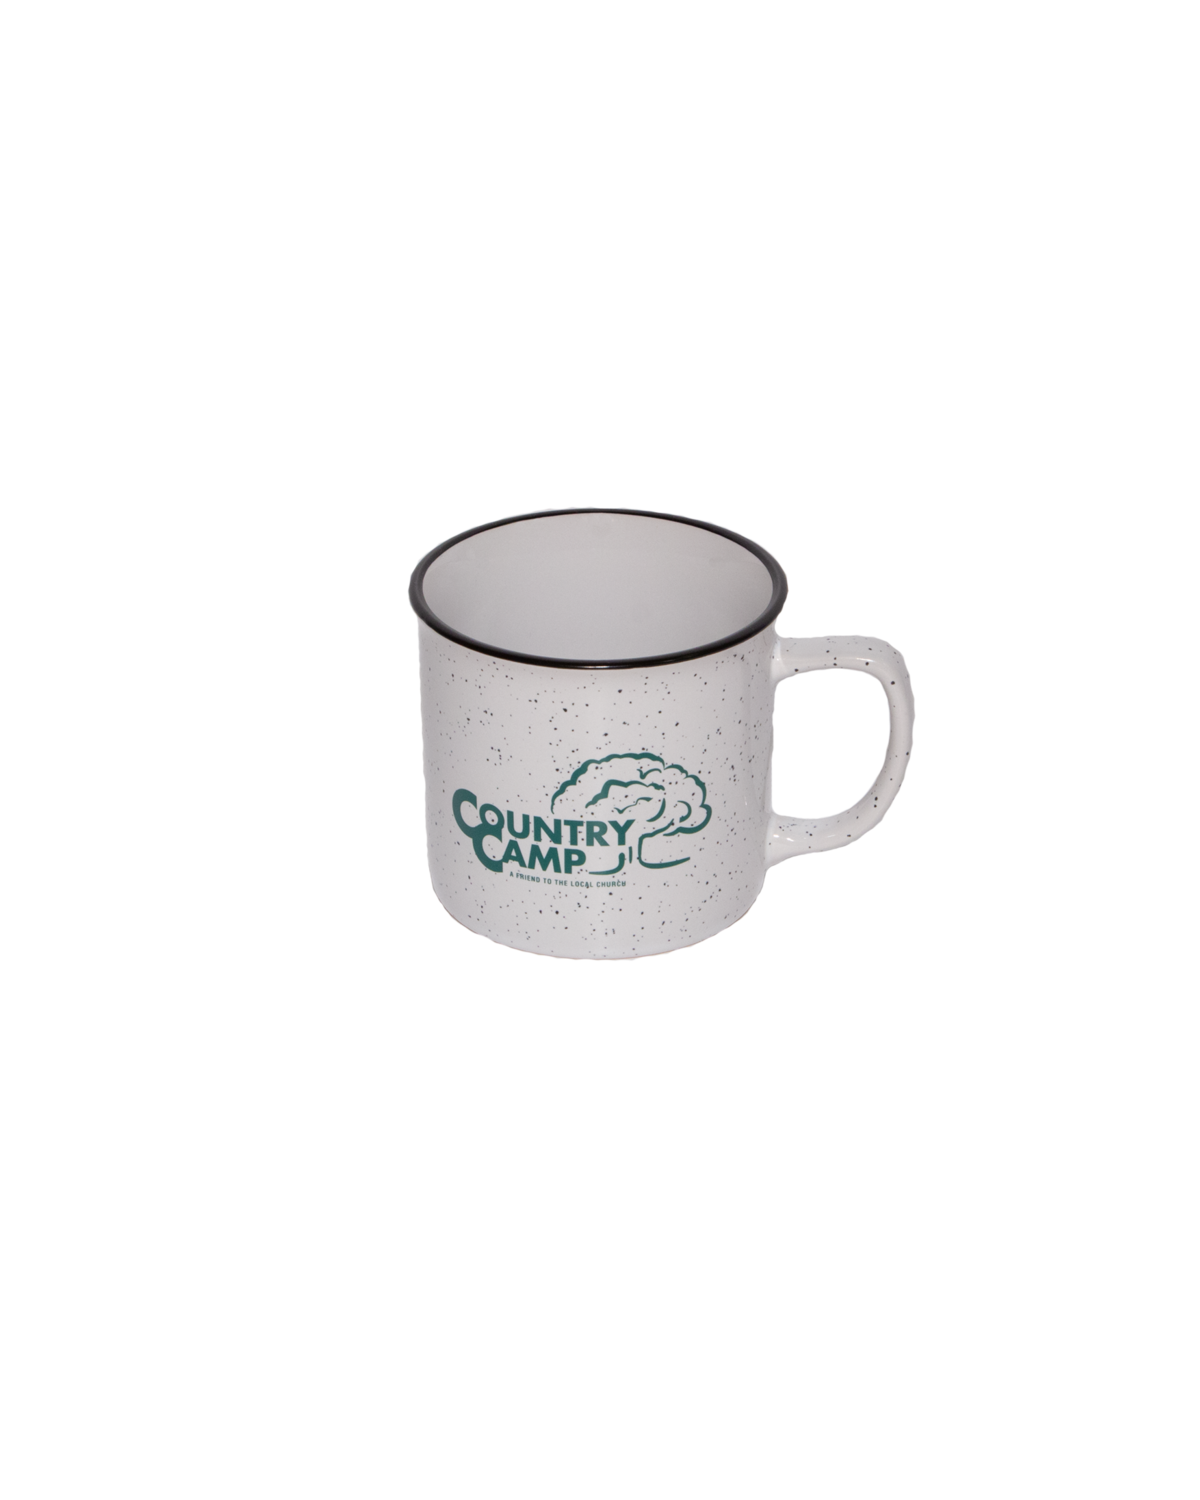 Country Camp Mug